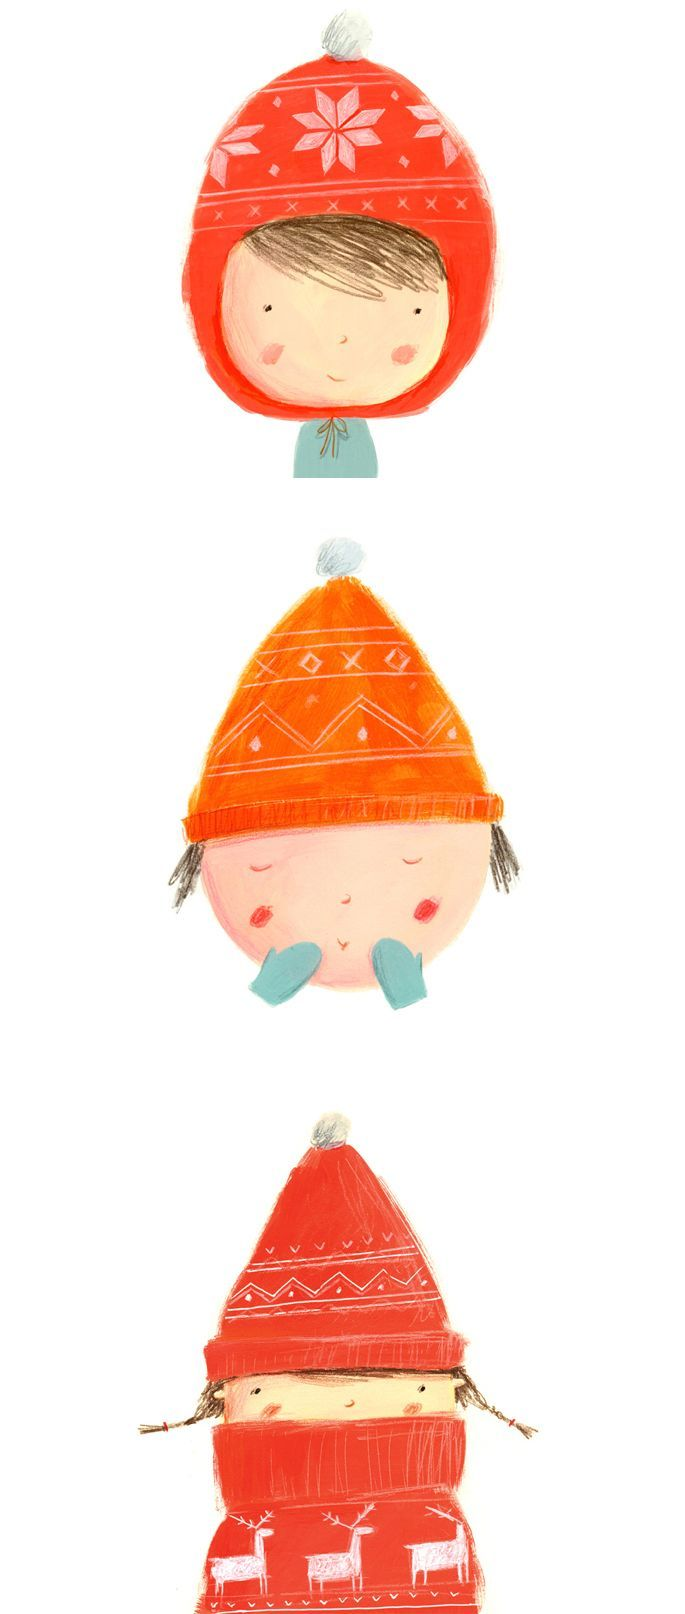 Ekaterina Trukhan Illustration | Grab a hat and a scarf for your little one before they go out in the cold!